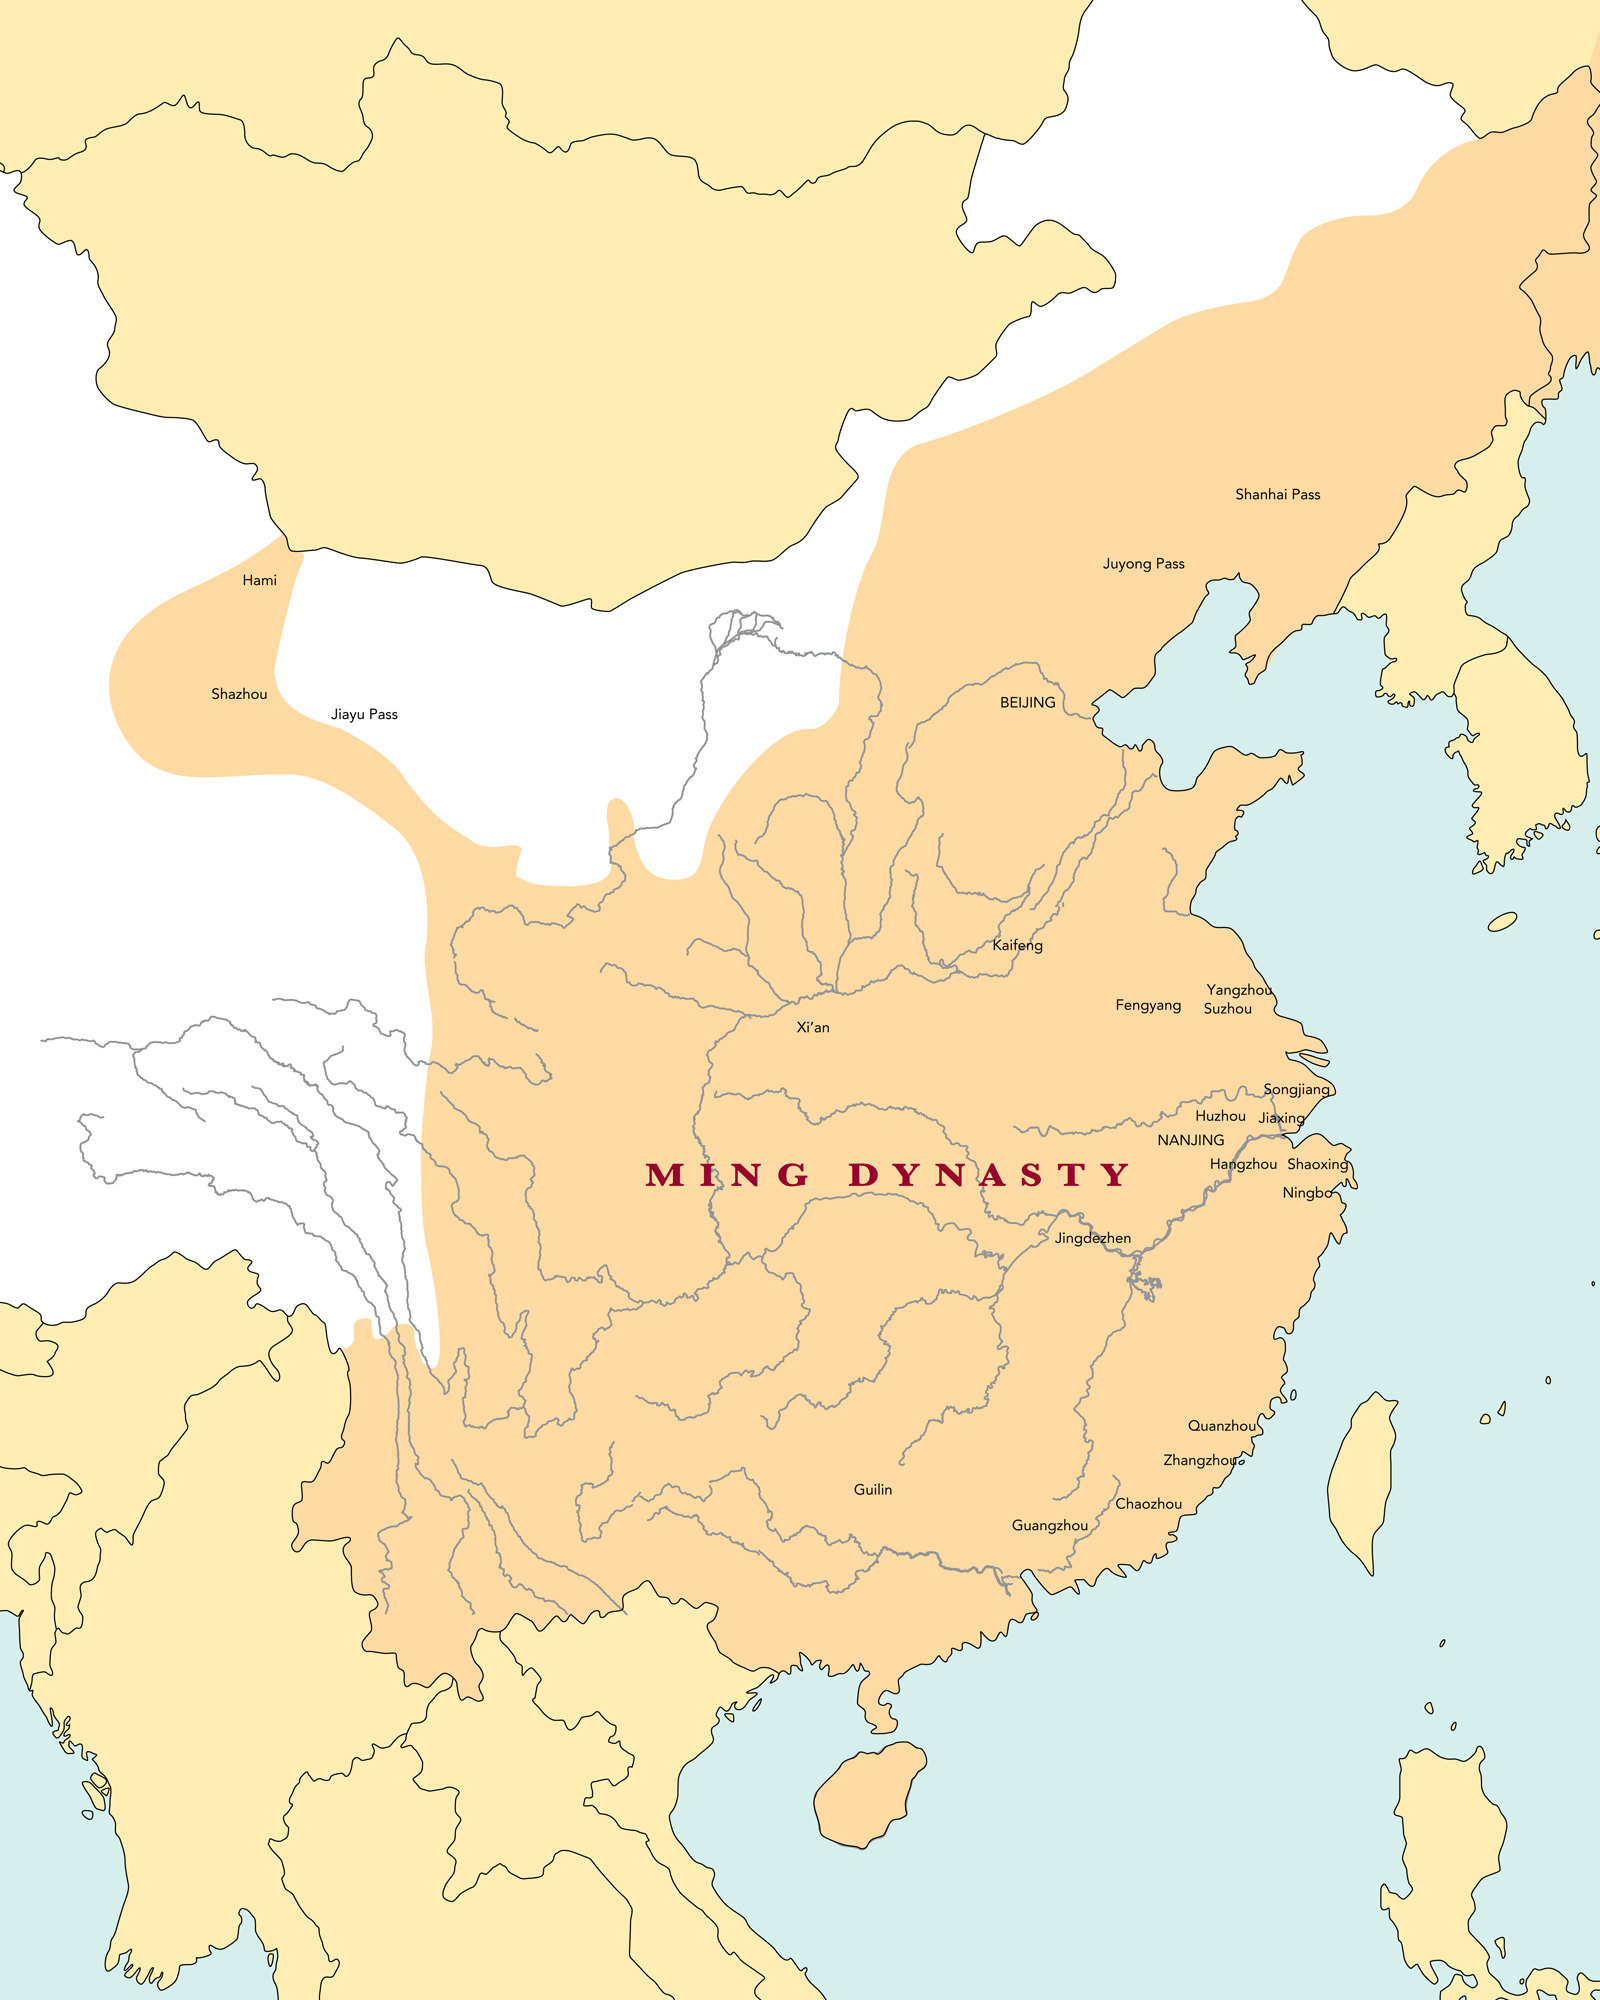 An Introduction To The Ming Dynasty